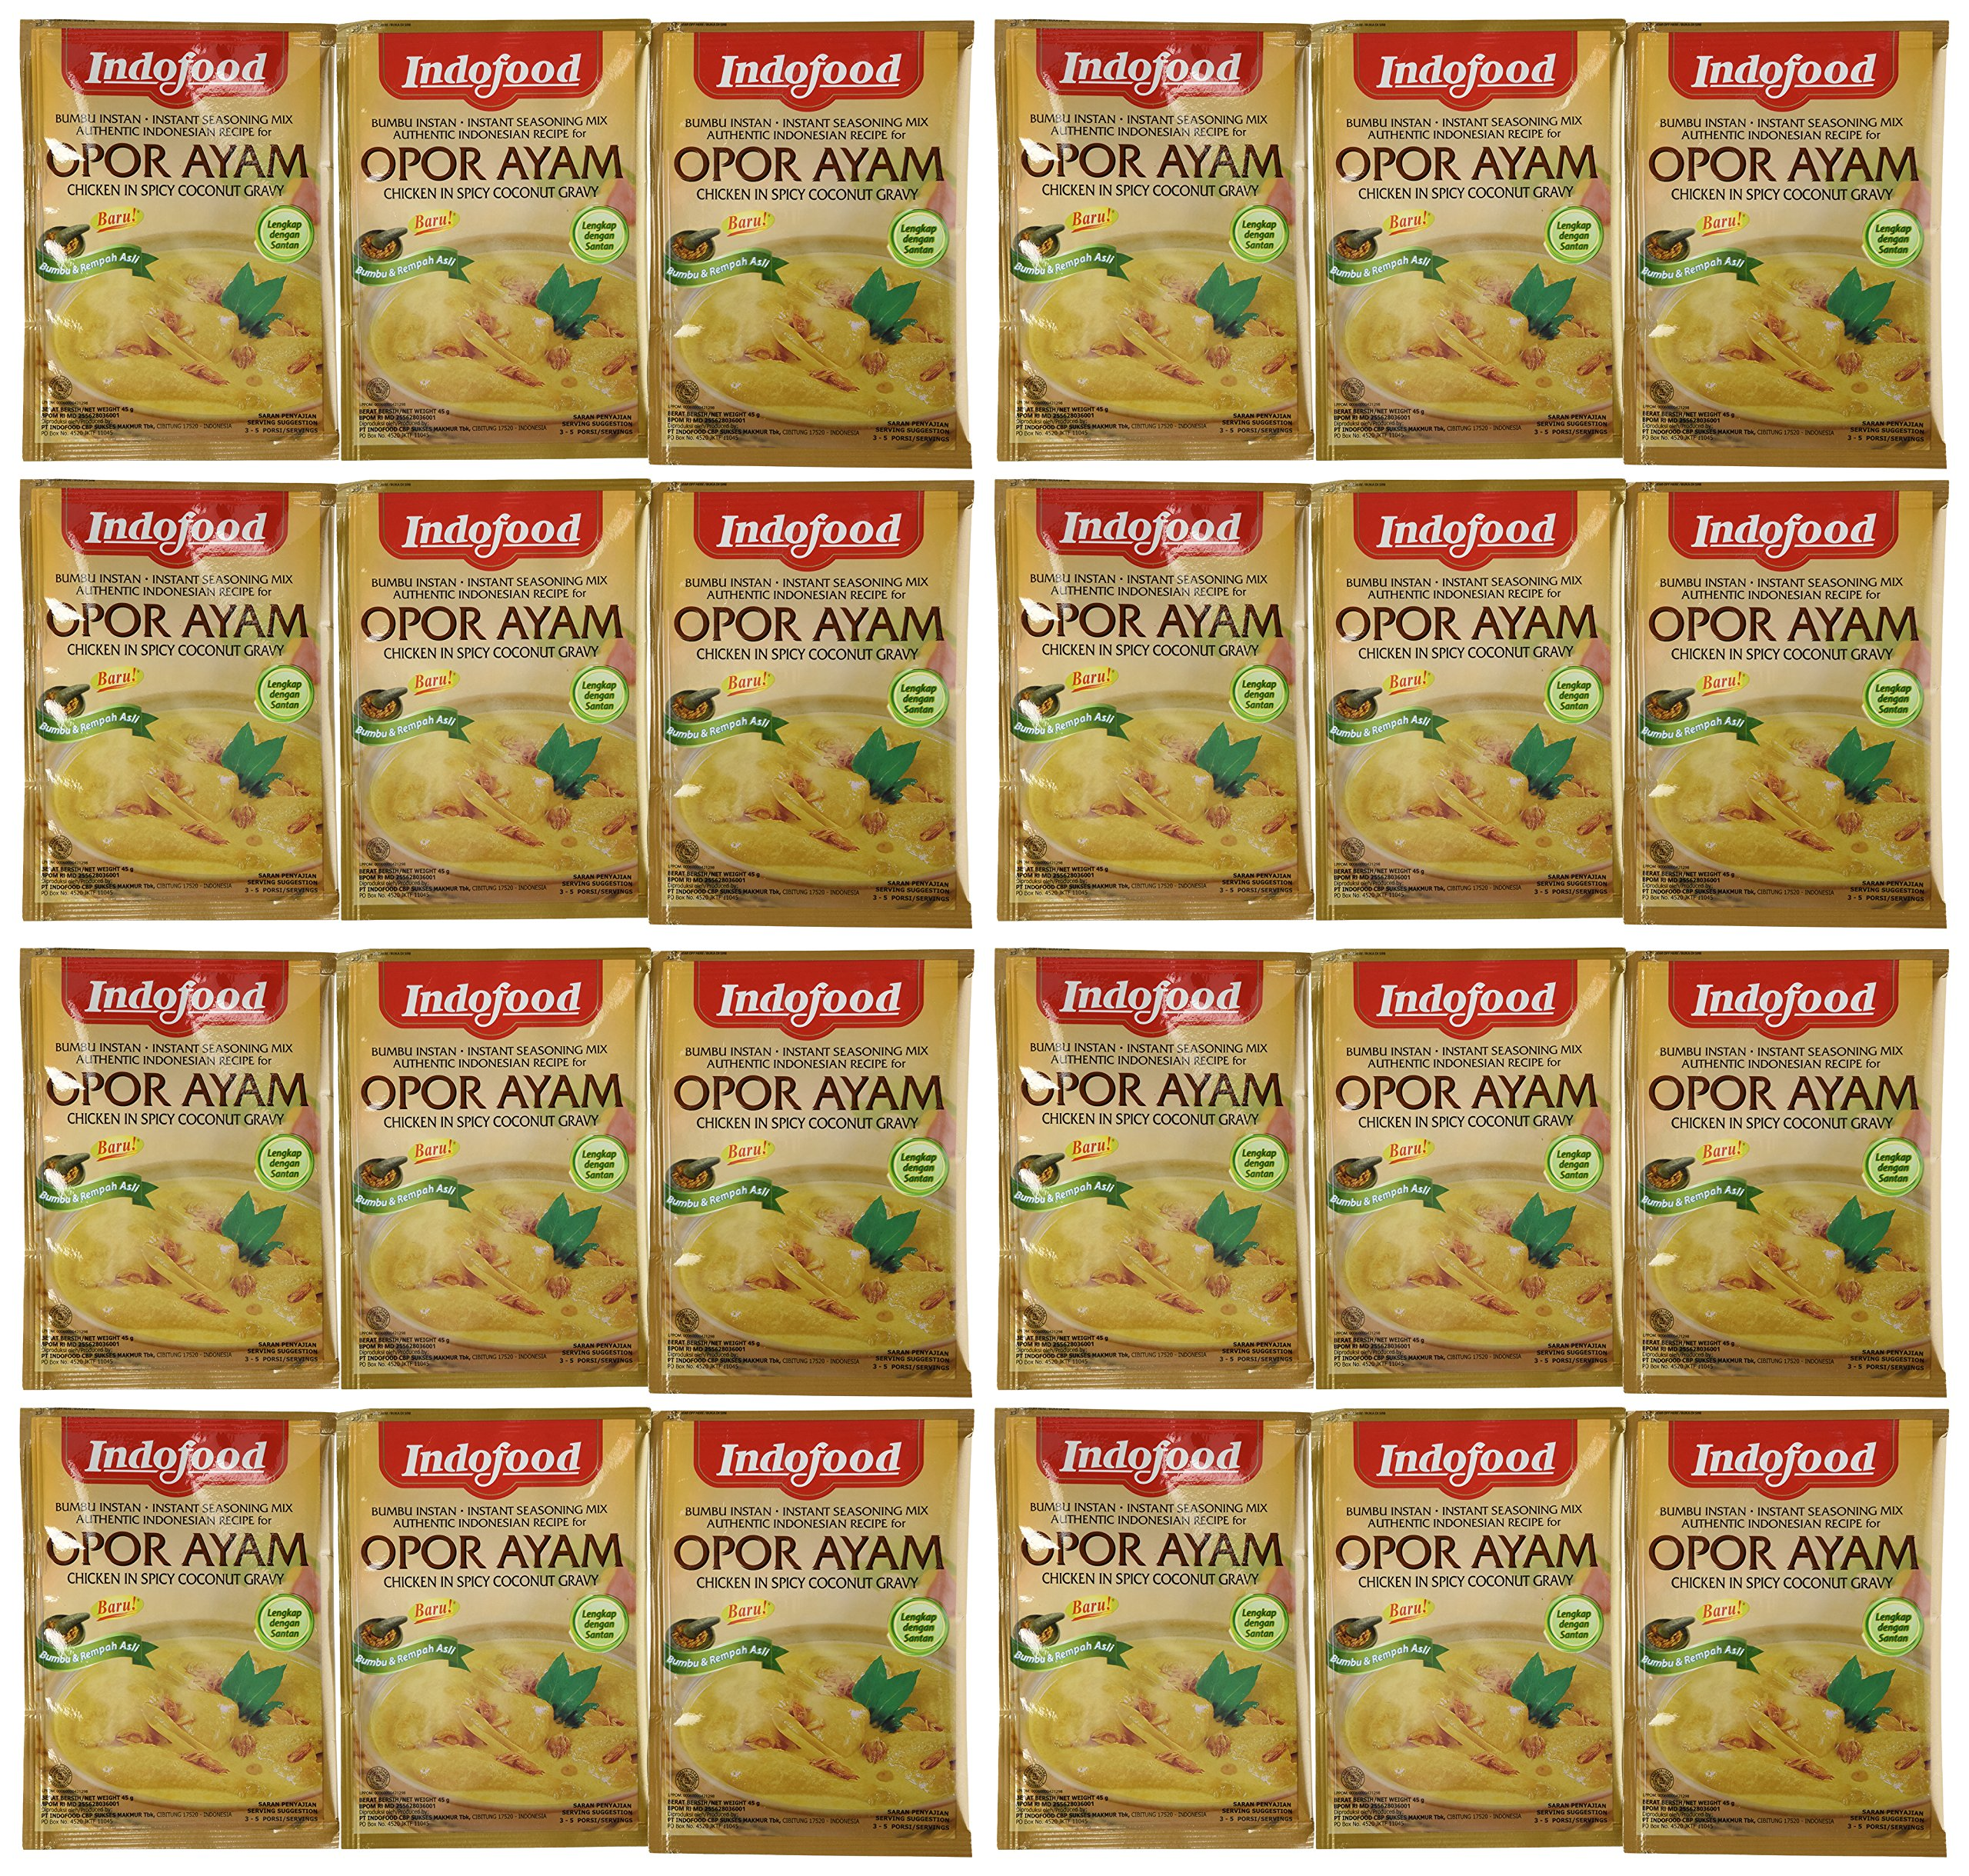 Indofood Opor Ayam Curry Sauce, 1.6 Ounce (Pack of 24)